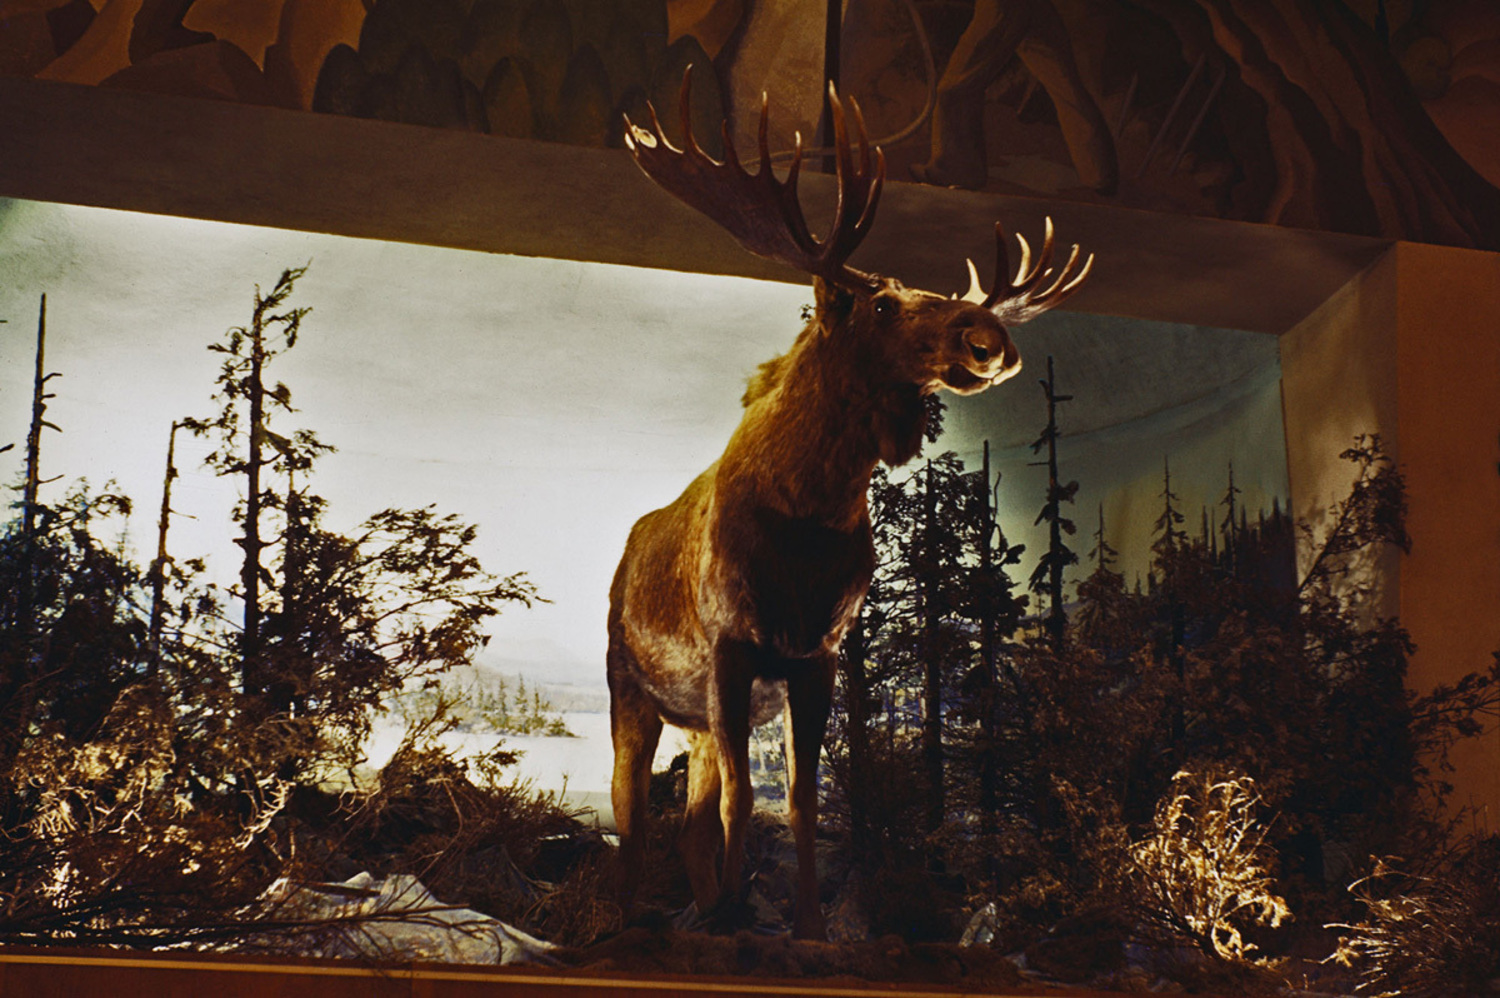 A stuffed moose in the Canadian Pavilion.